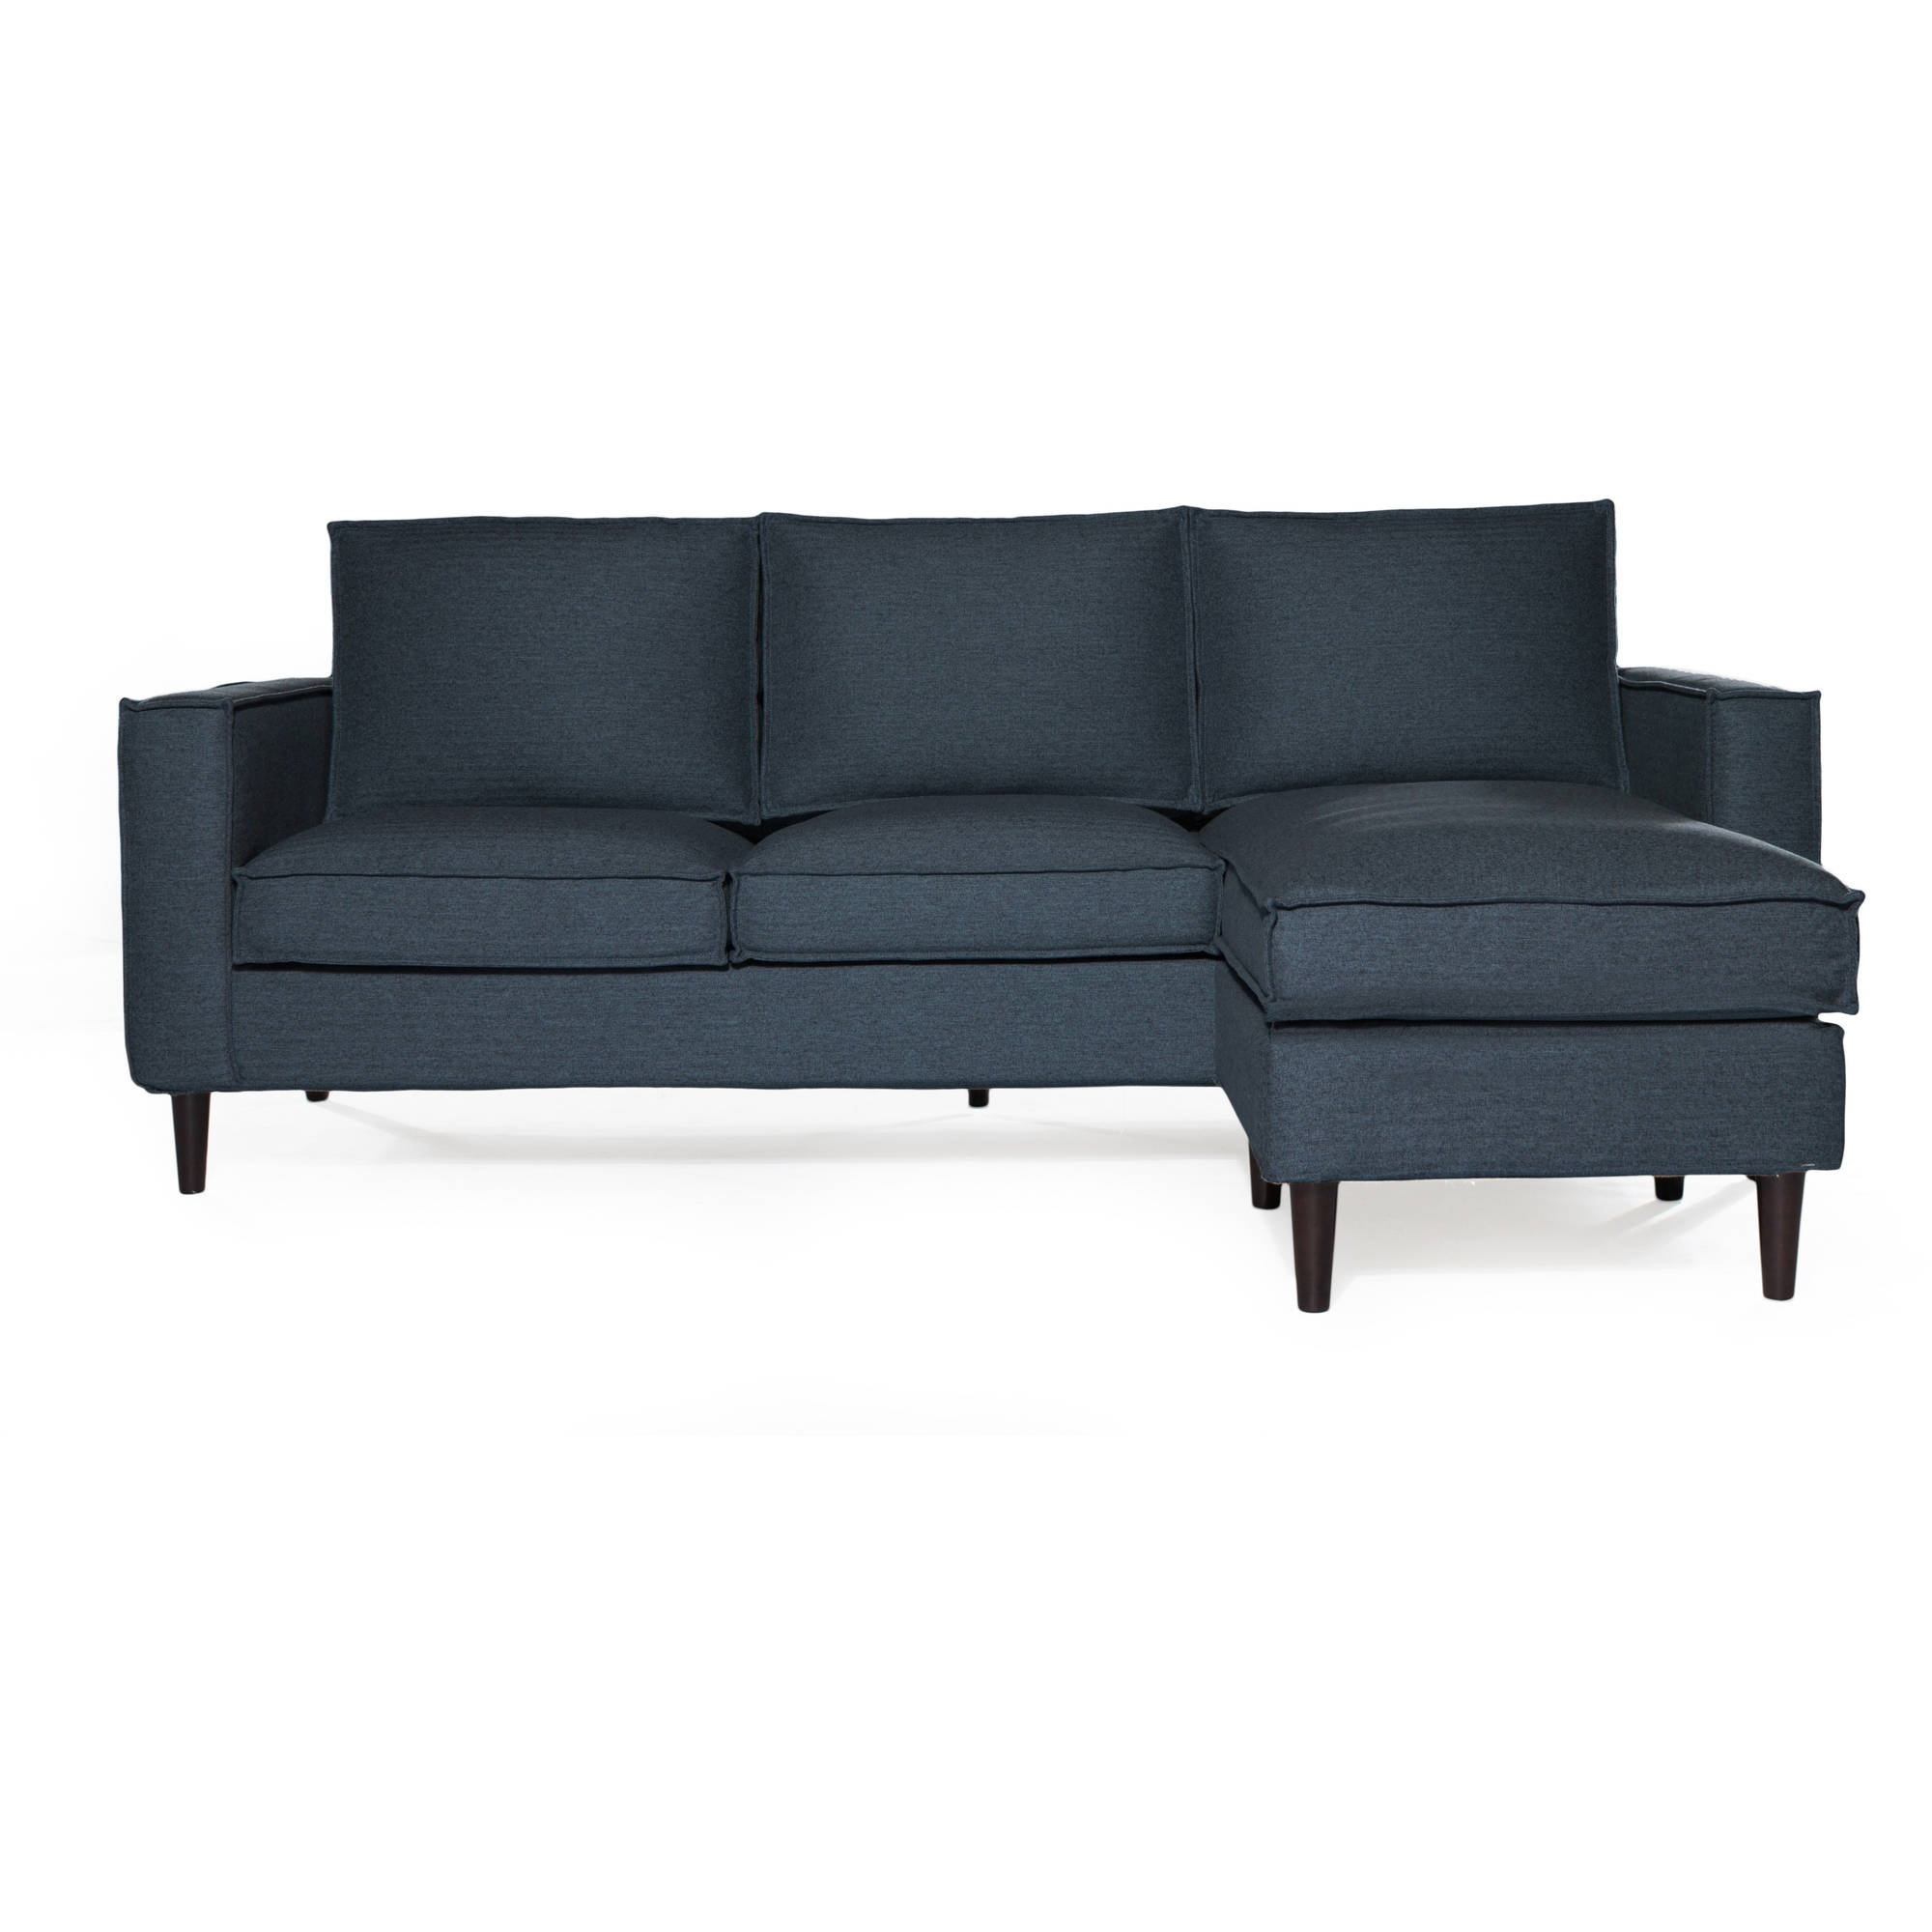 Sofas & Couches – Walmart Intended For Michigan Sectional Sofas (View 10 of 10)